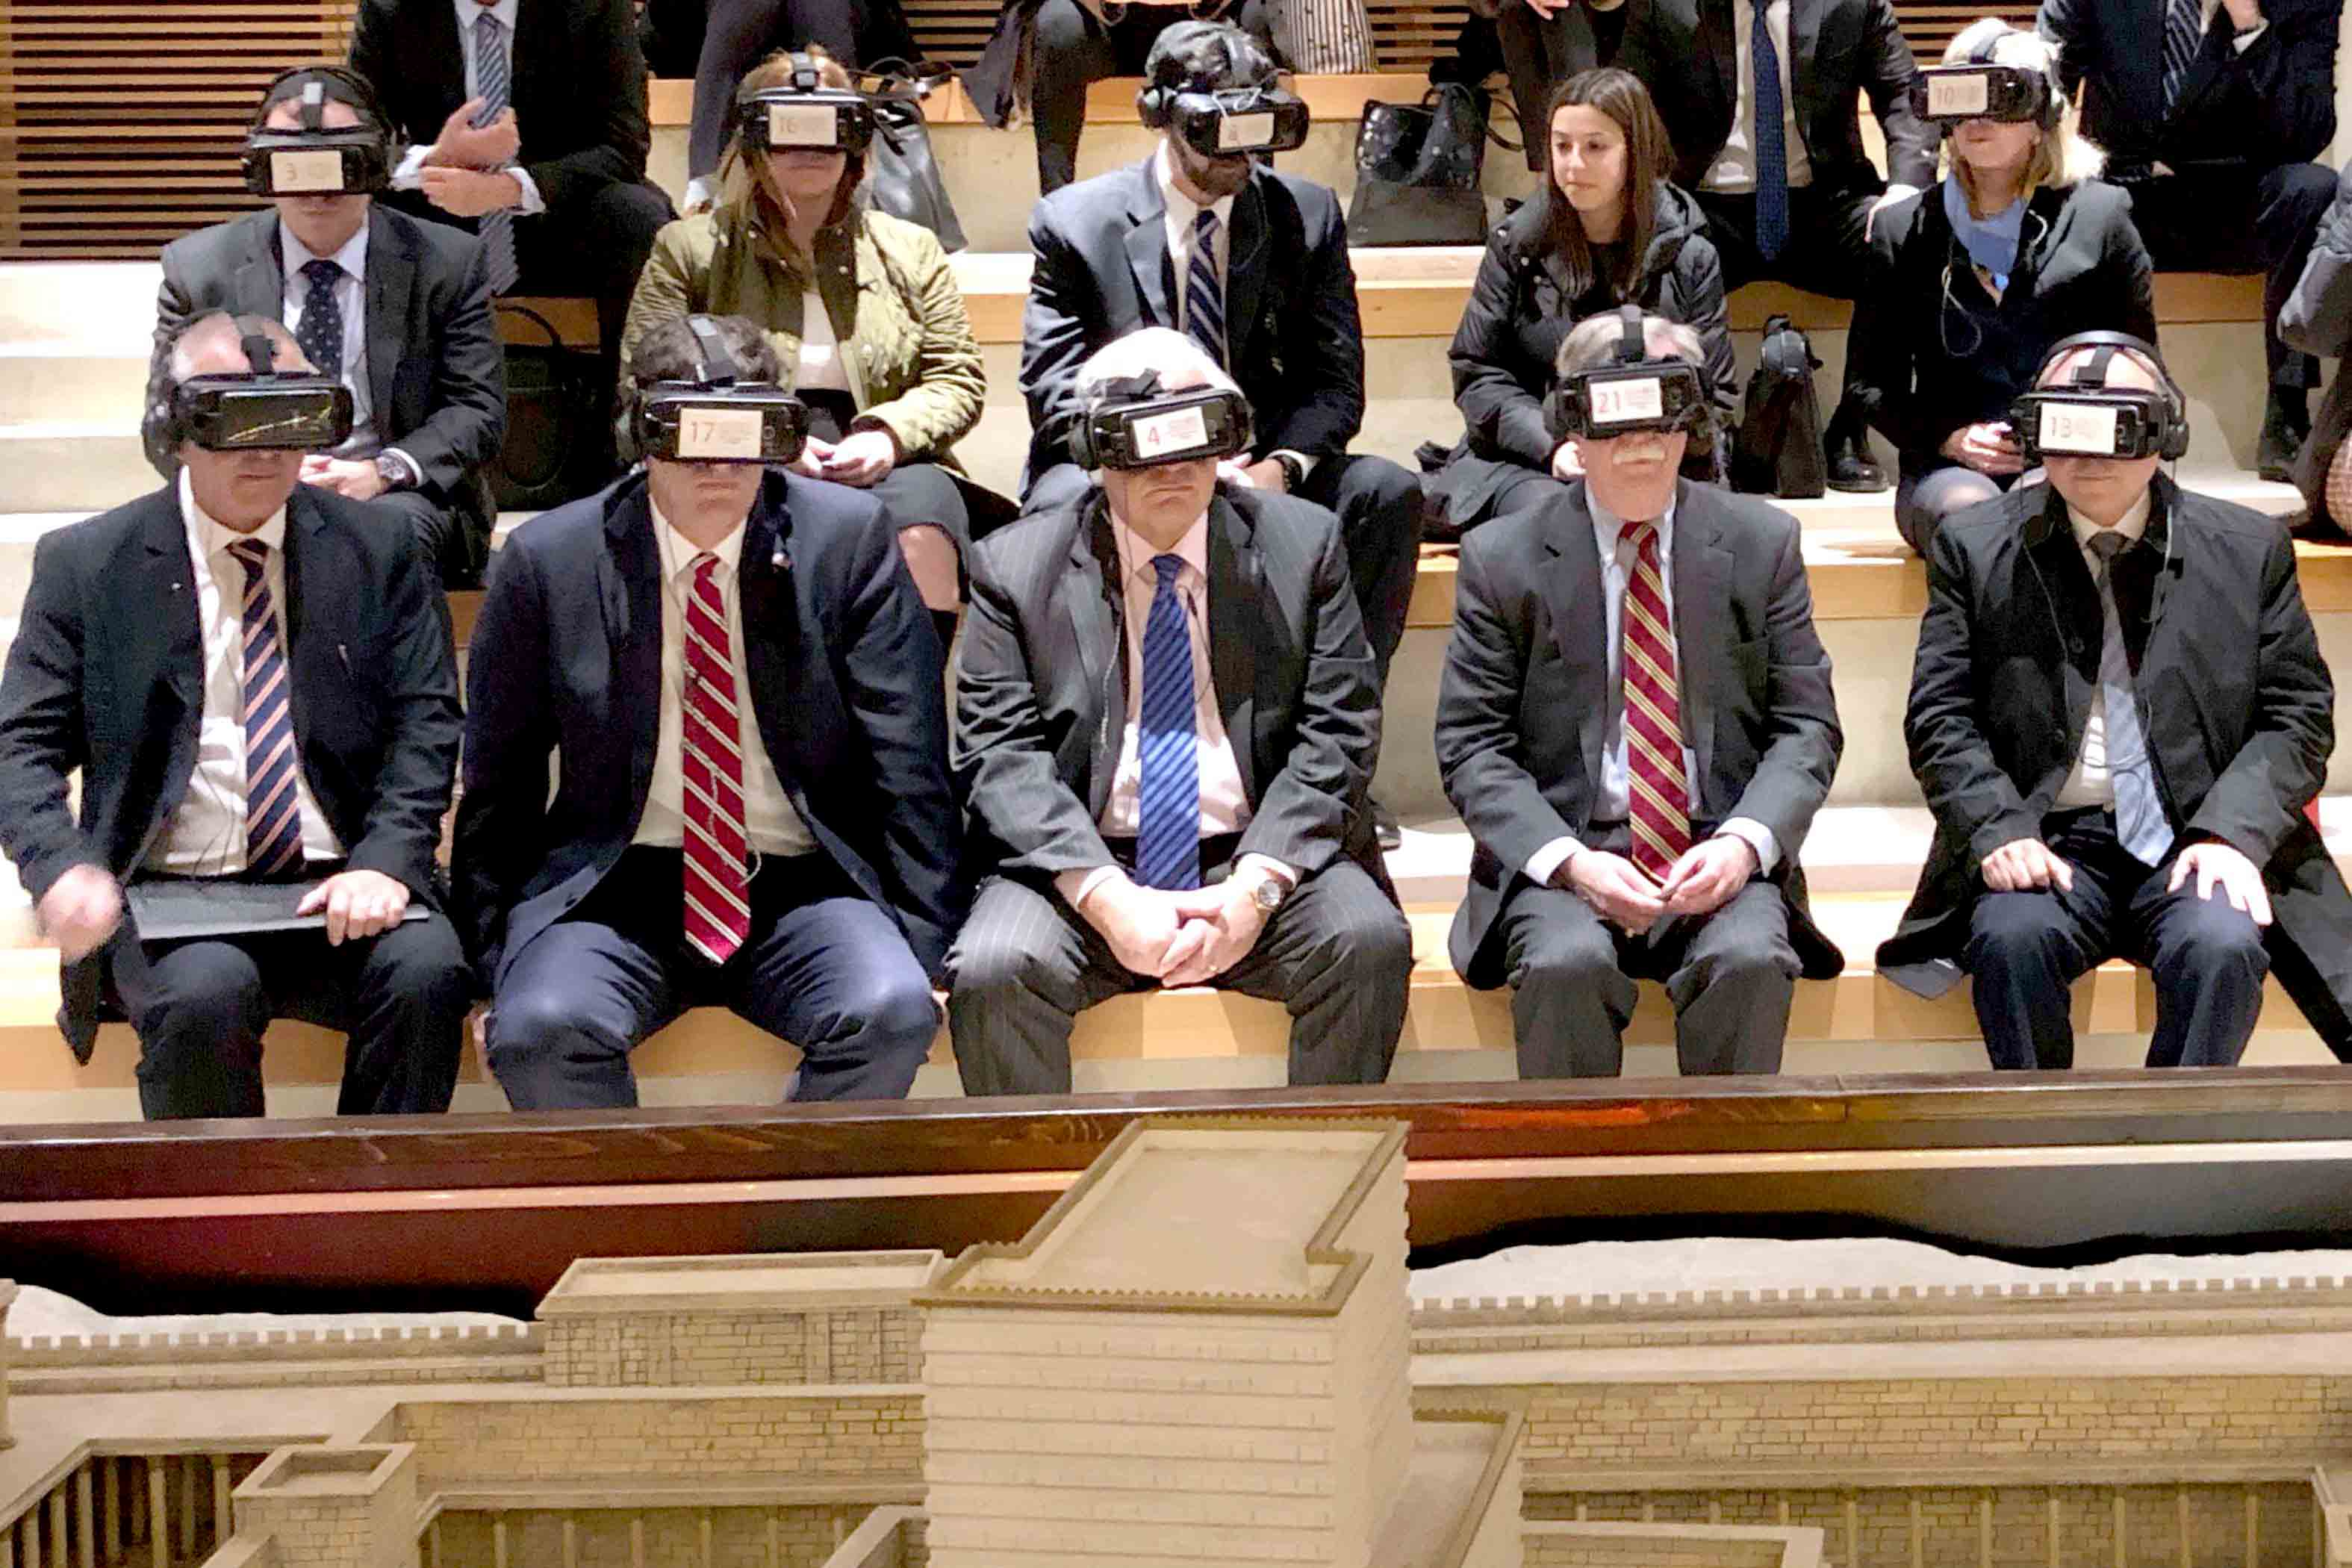 US national security adviser John Bolton (2nd R)  wears virtual reality goggles during a visit to the Western Wall  tunnel complex in Jerusalem's Old City, January 6. (Reuters)